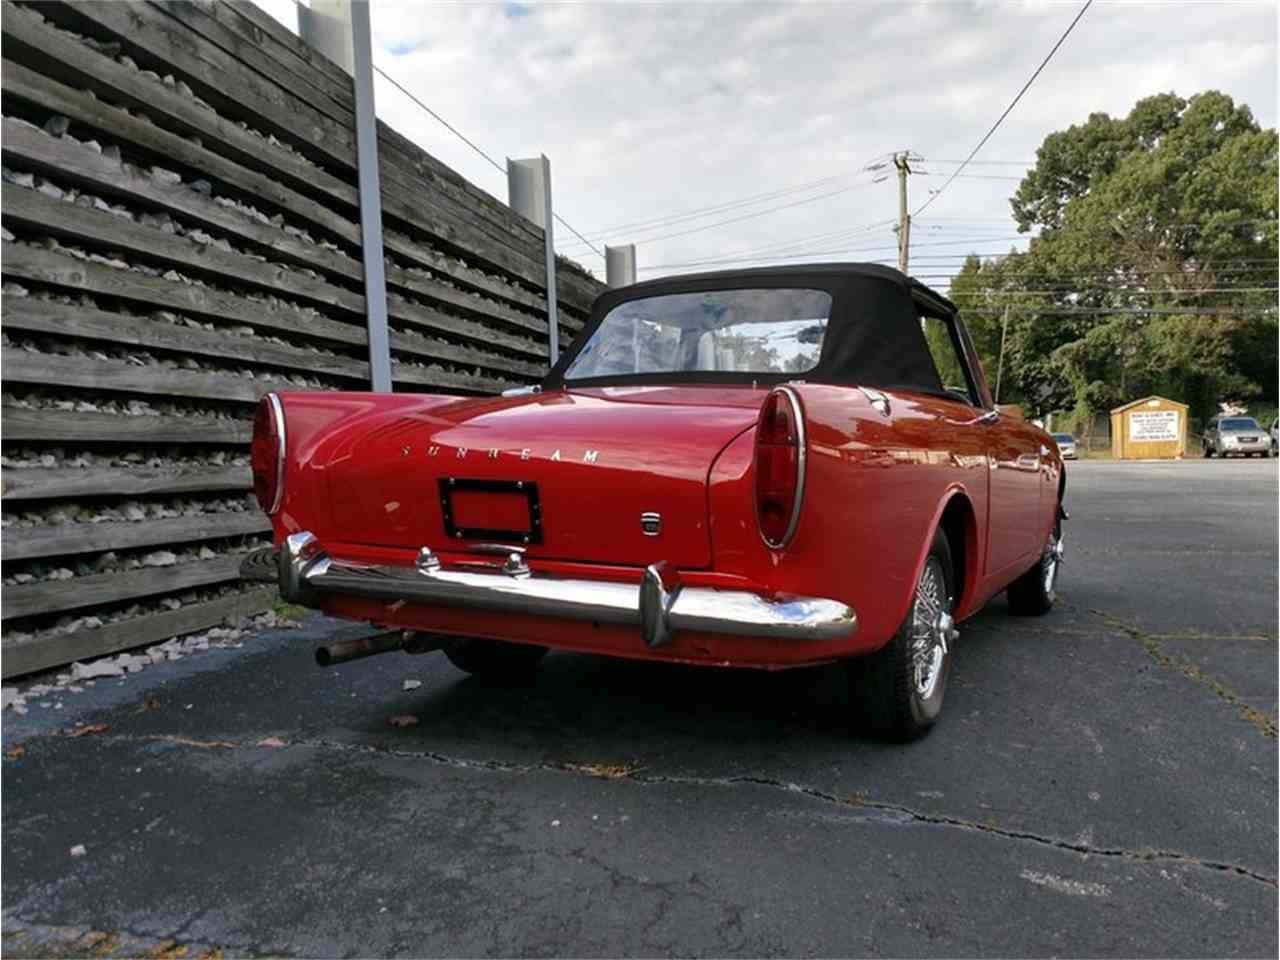 1967 Sunbeam Alpine Rootes 1725 For Sale In Greensboro North Carolina 27407 on 1967 sunbeam alpine series v 1725